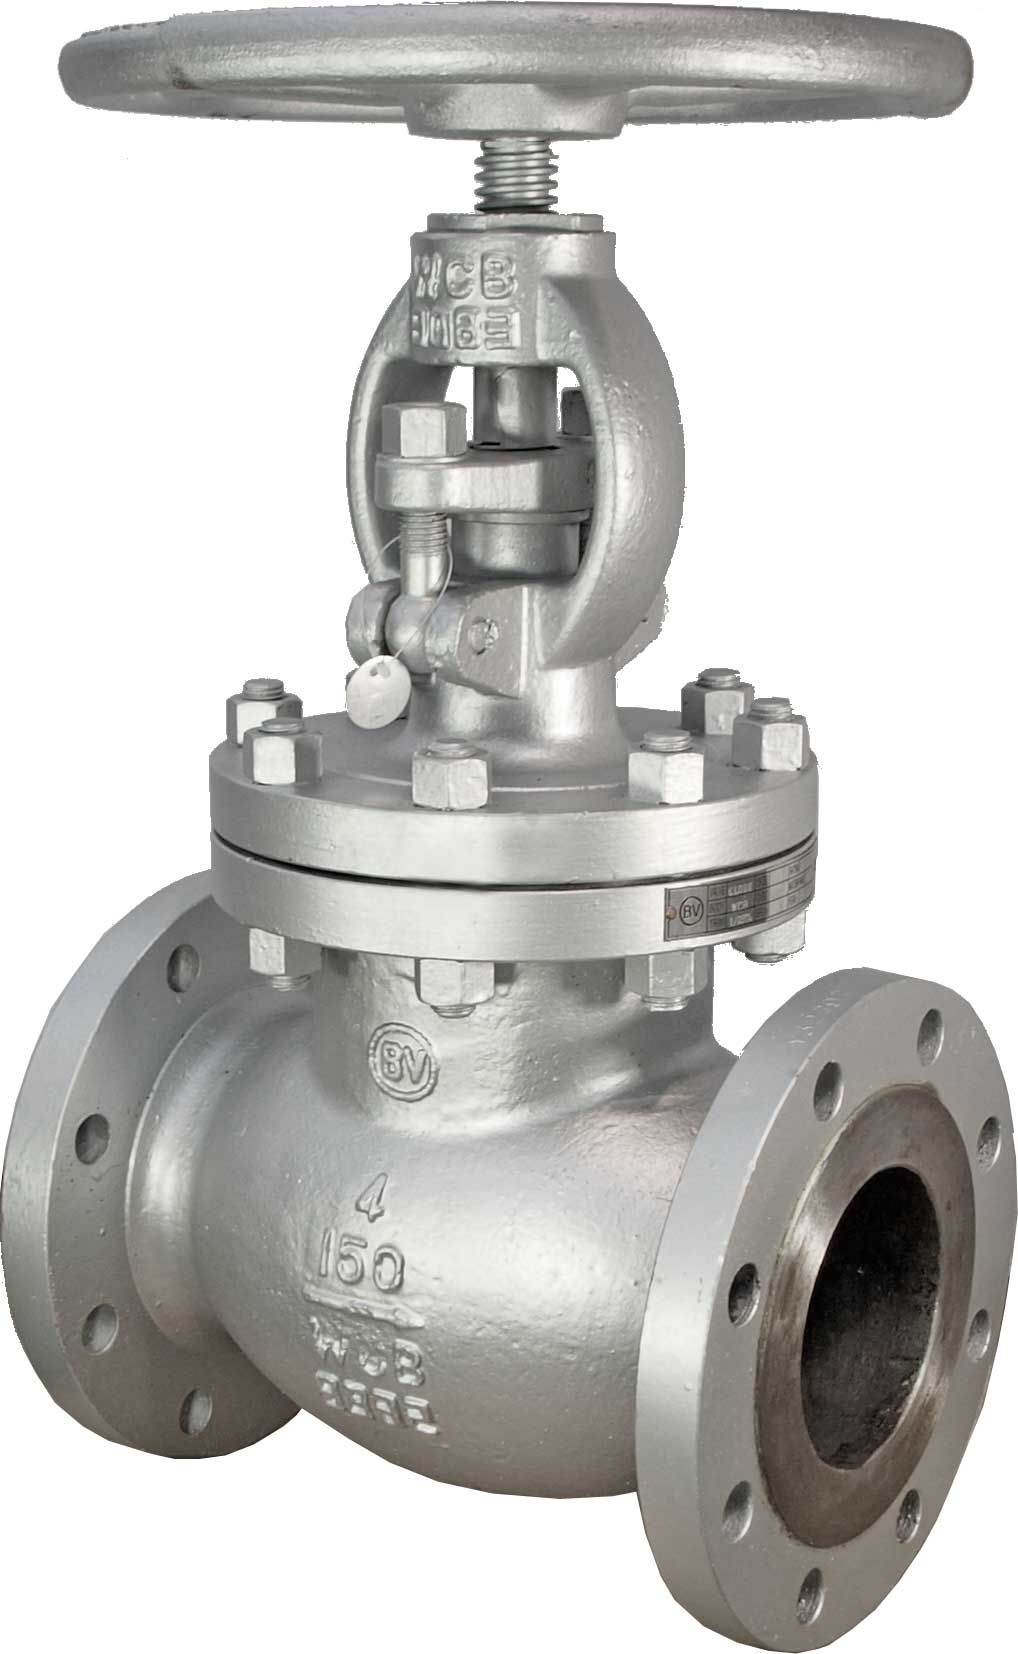 Globe Valve Body A216 Wcb Bonnet A216 Wcb Trim 13 Cr Hand Wheel Operated Pressure Rating Class 150 Class 300 Forged Steel Valve Cast Steel